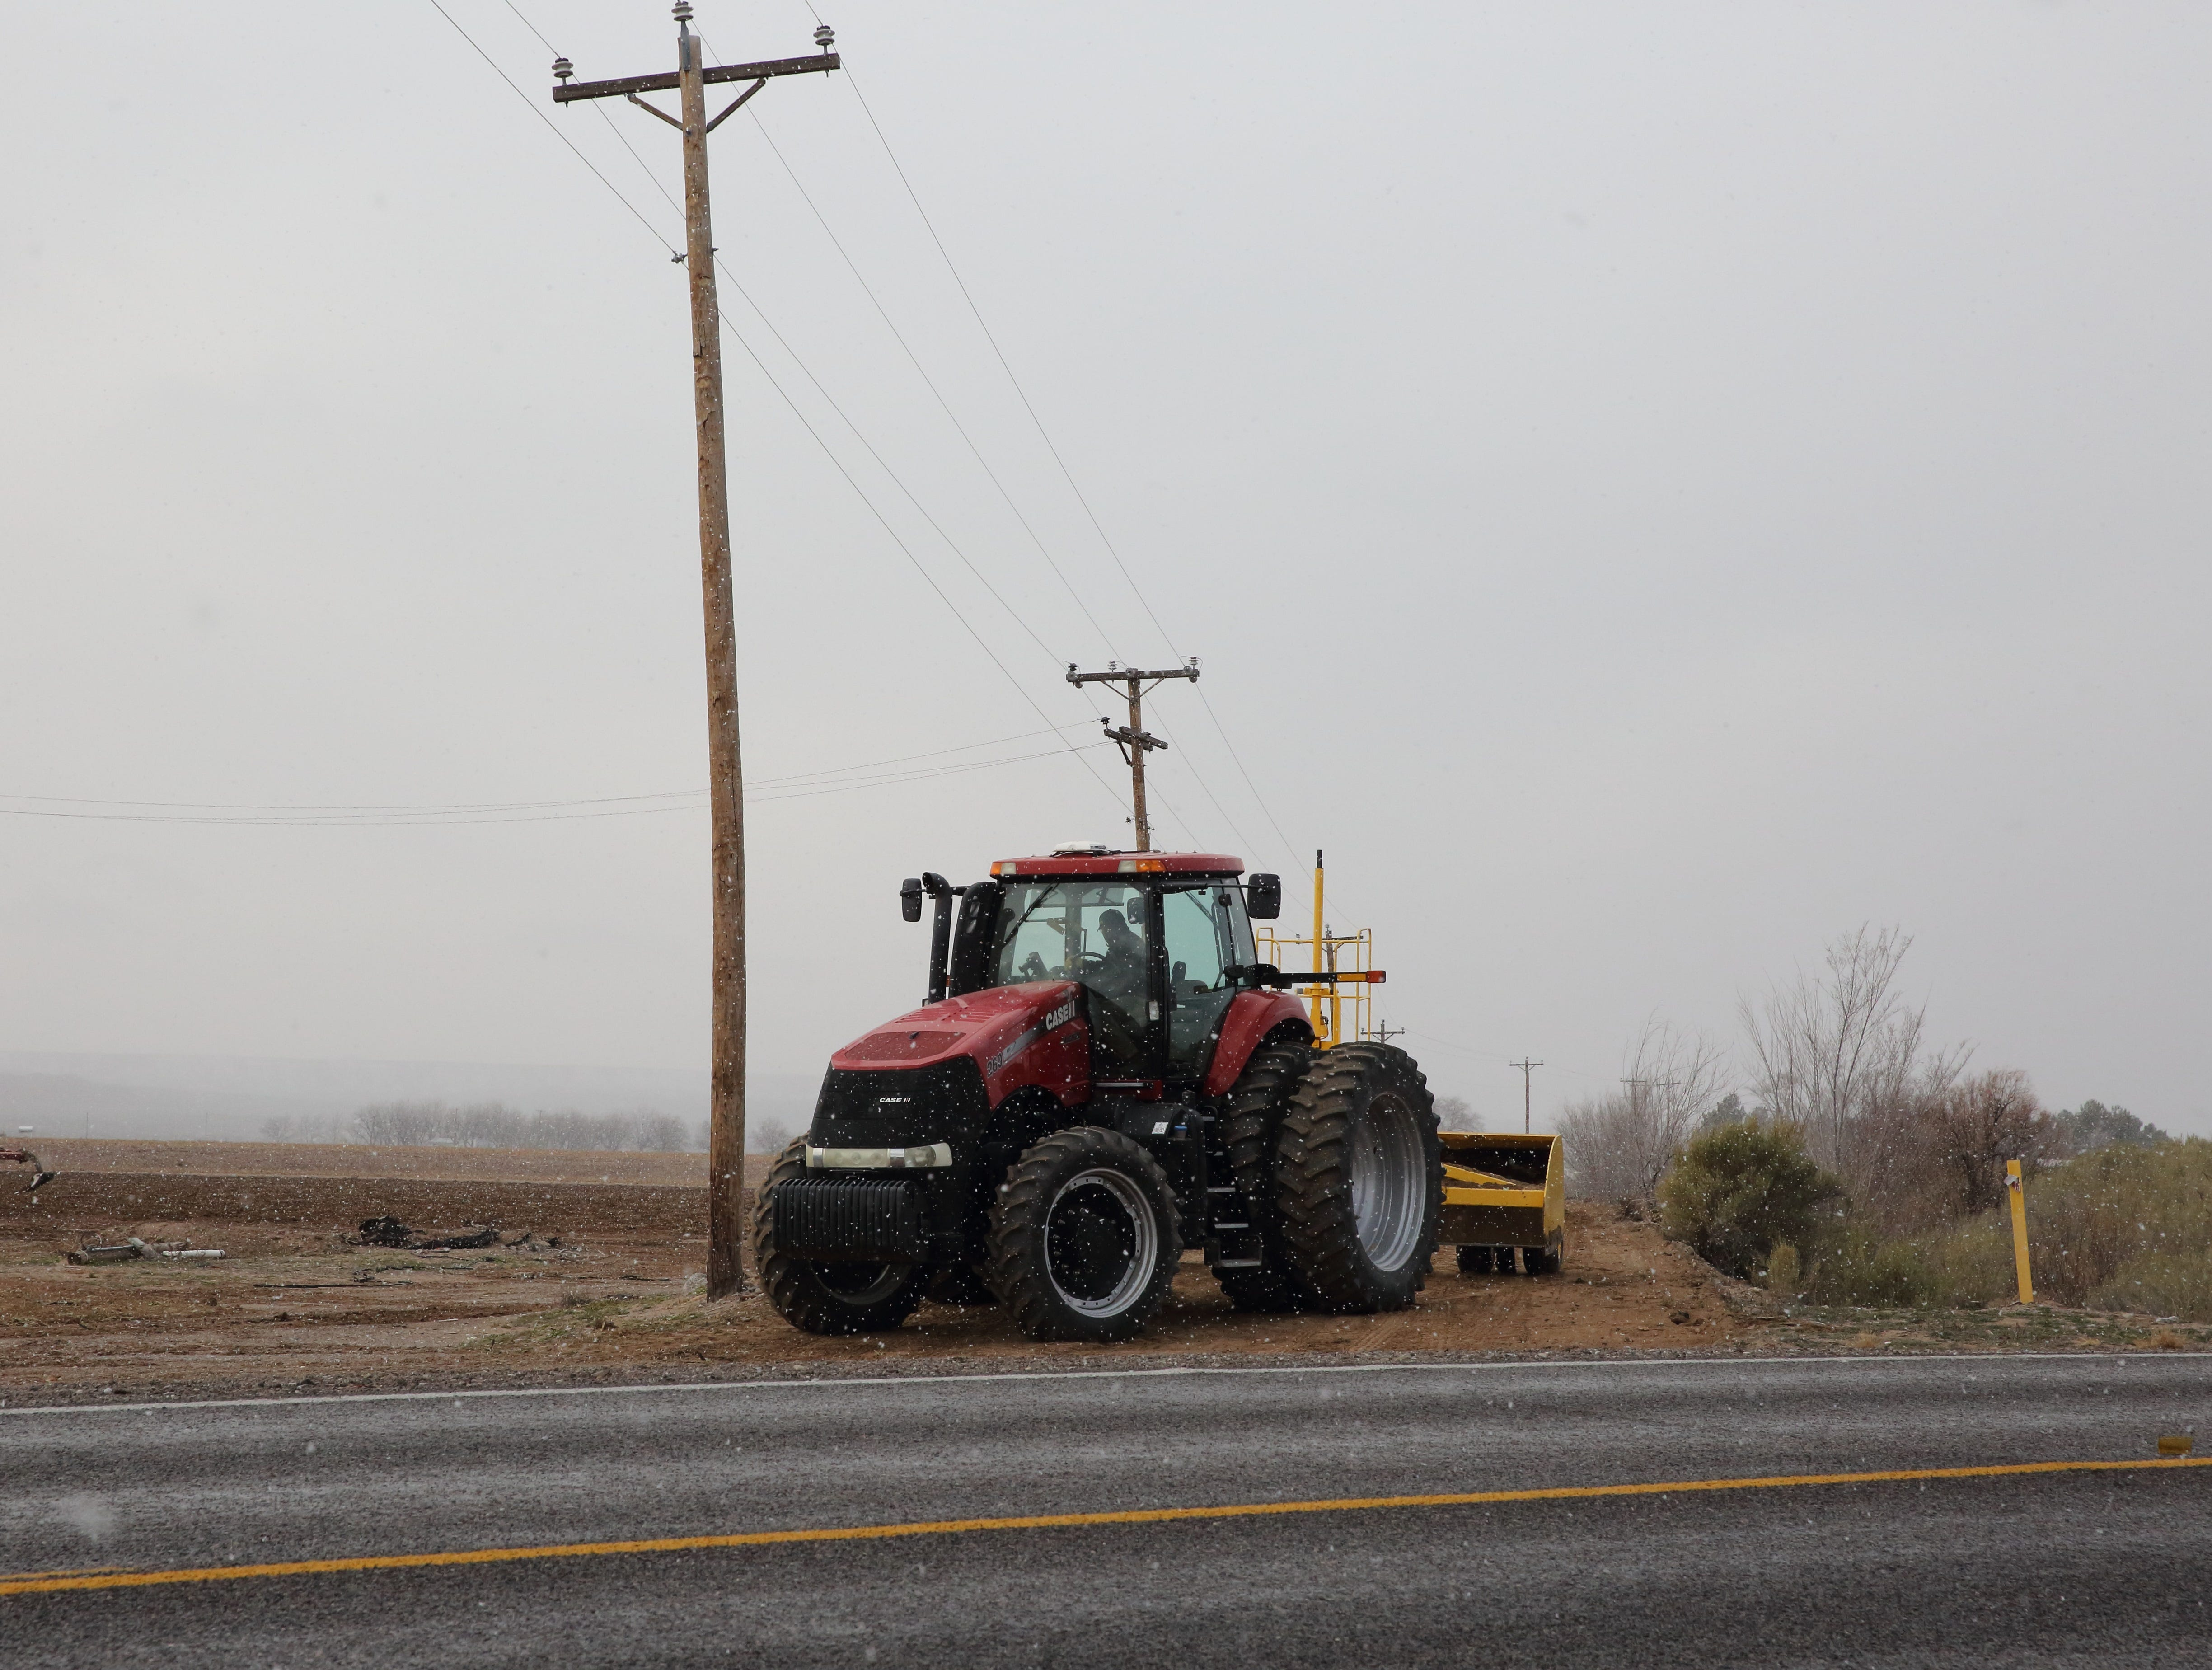 Amid snow flurries, an operator drives a tractor near a field north of Hatch, New Mexico on Wednesday, Jan. 2, 2019.